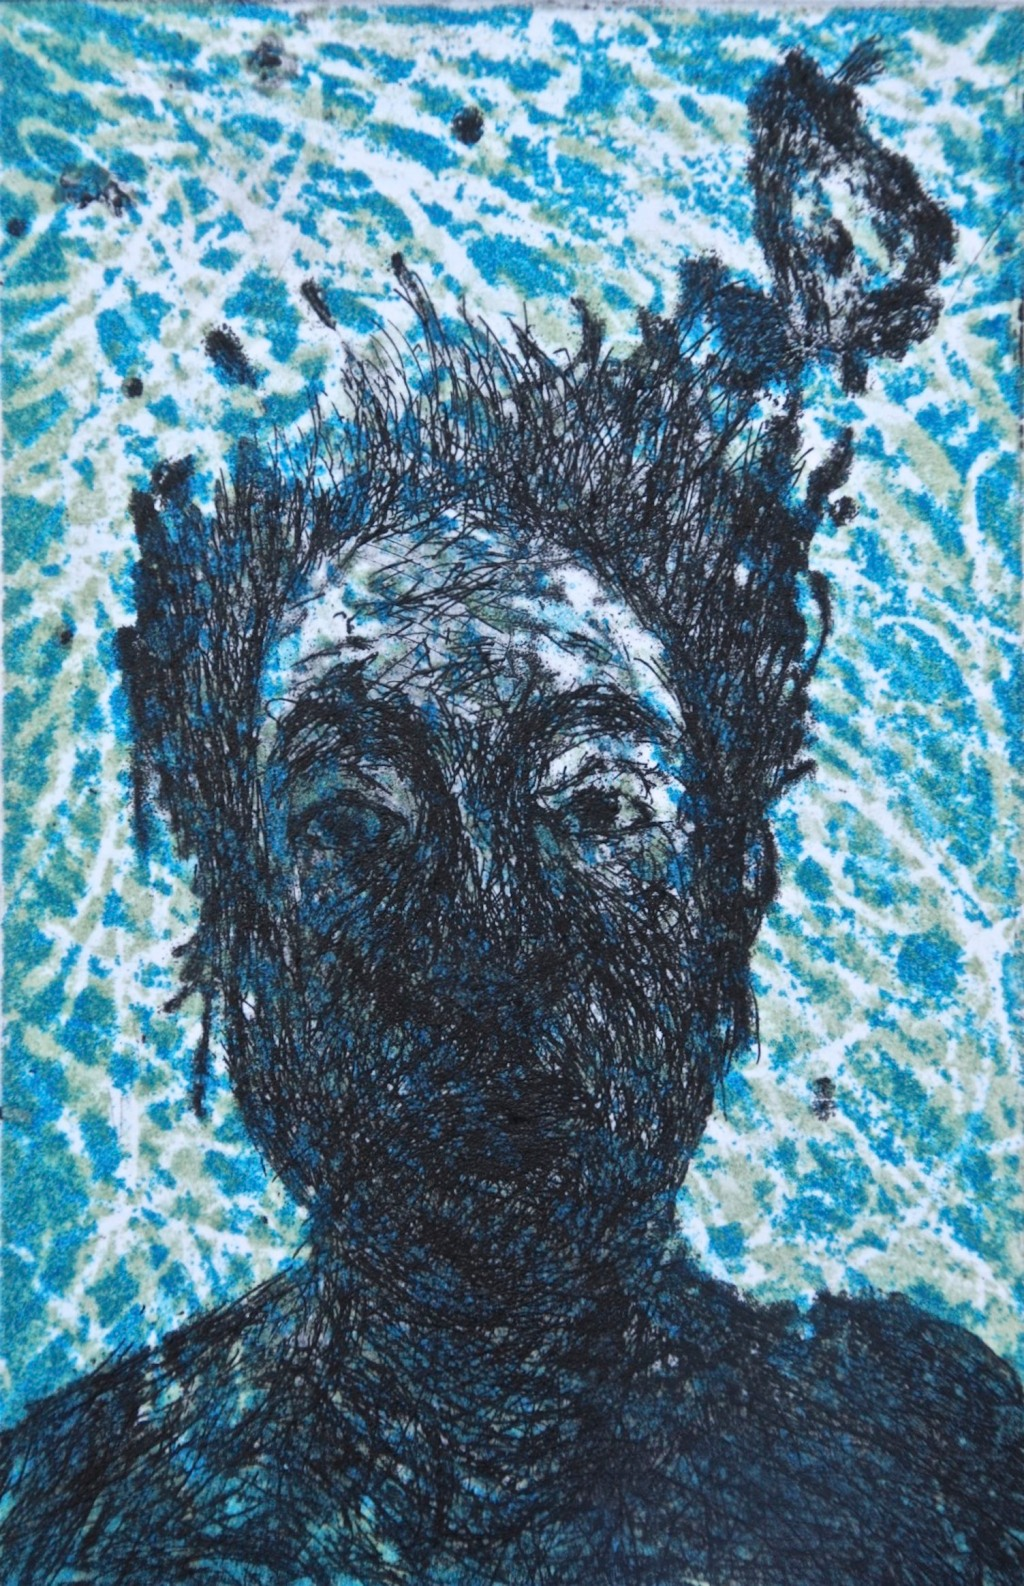 Silent Mood with Fish, etching and aquatint, 12 x 8 cm, edition of 40